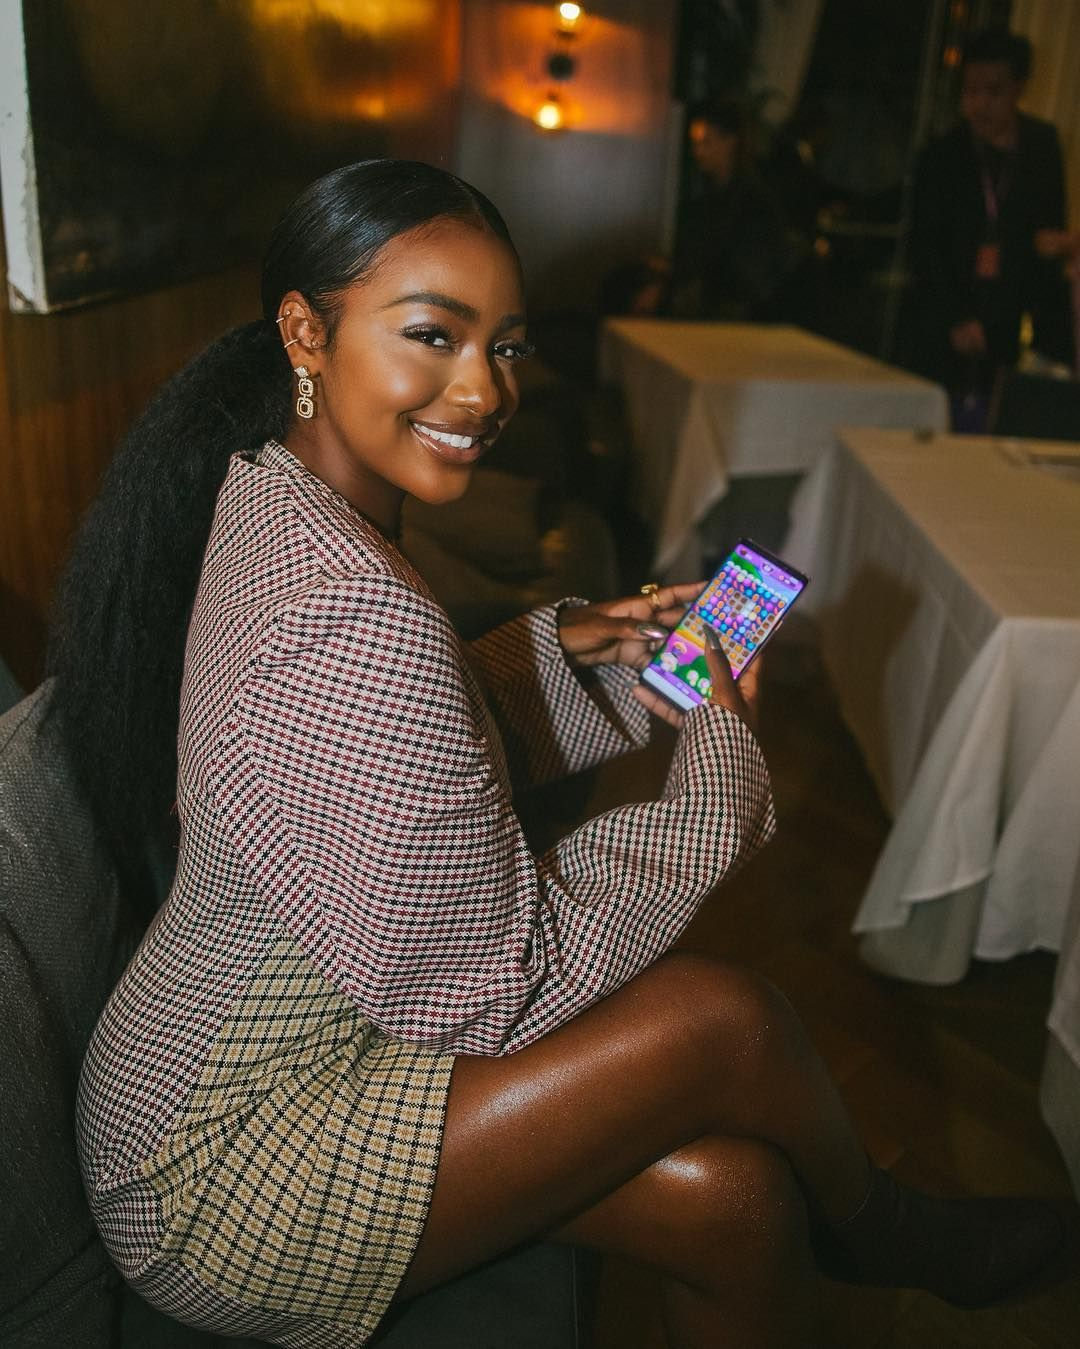 """791d960d759 Justine Skye on Instagram  """"Feeling Delicious 😋 w   CandyCrushSaga and  Just playing the new Candy Crush Friends Saga BRB  CandyCrushFriends  ad"""""""